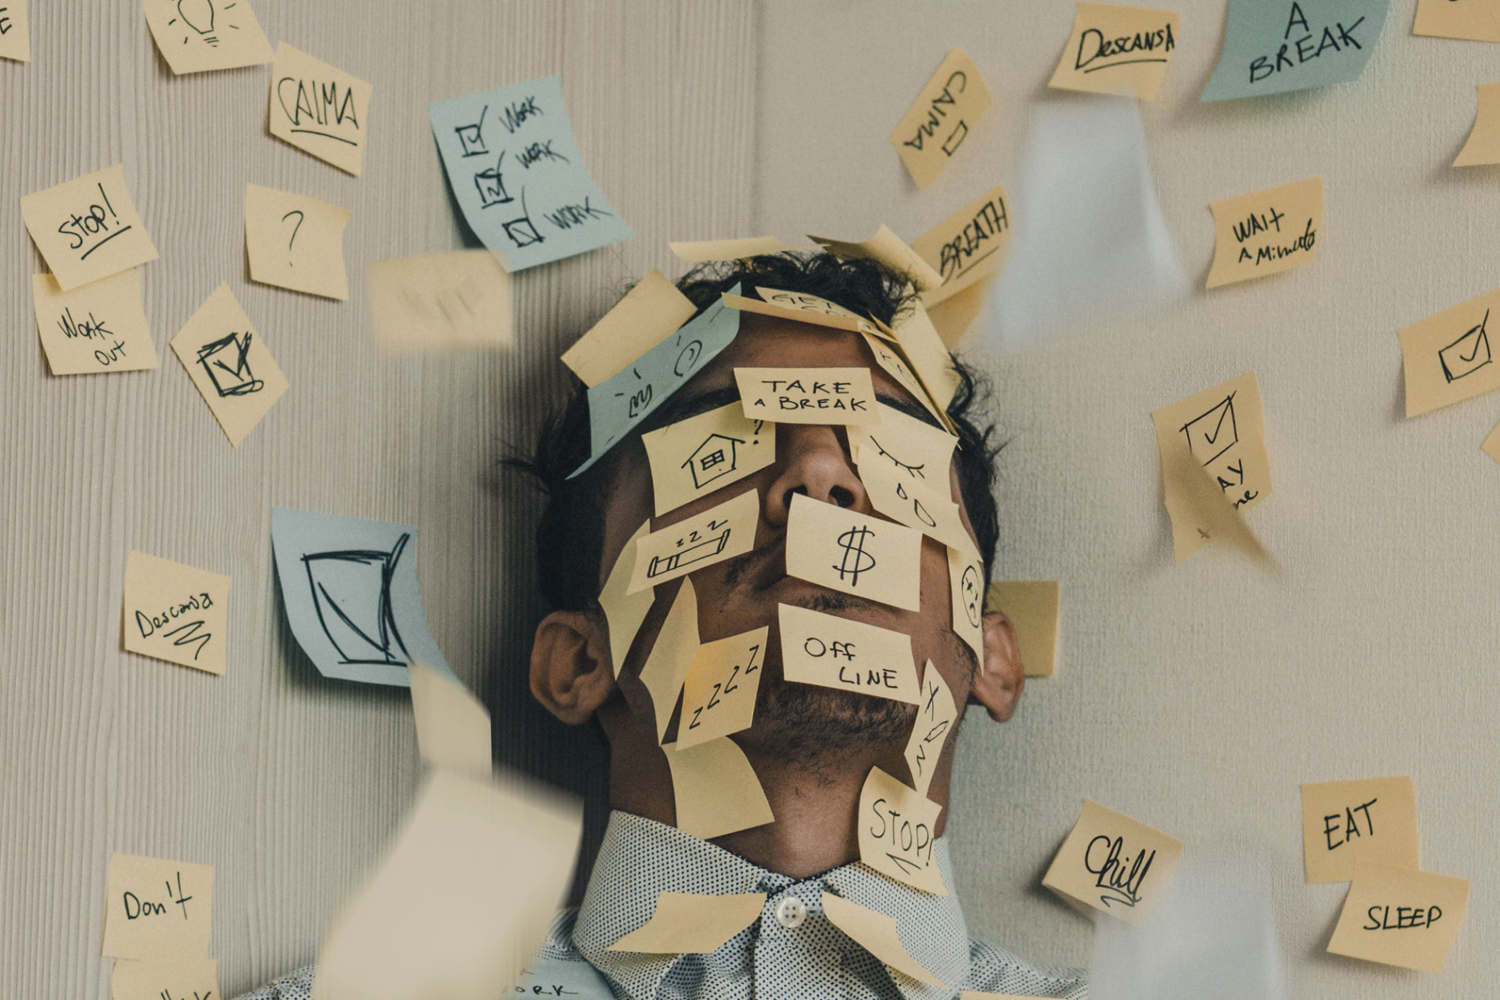 Photo by Luis Villasmil from unsplash.com depicting stress